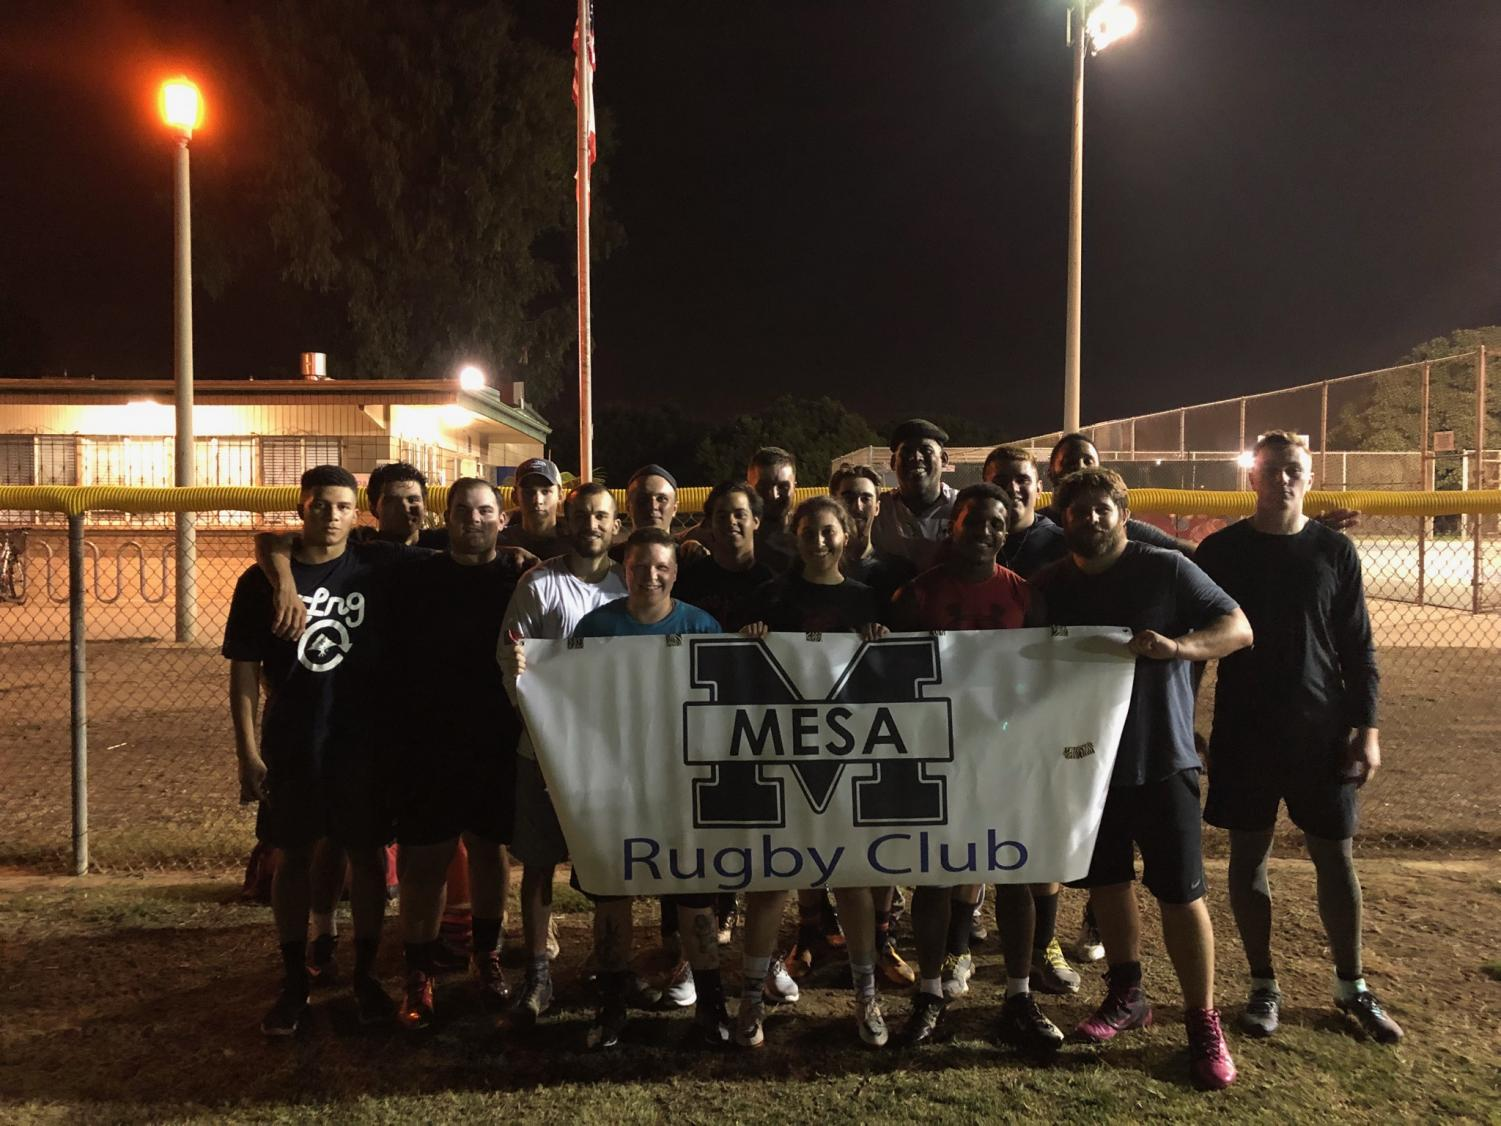 Mesa College's rugby club enjoying the end of their practice.